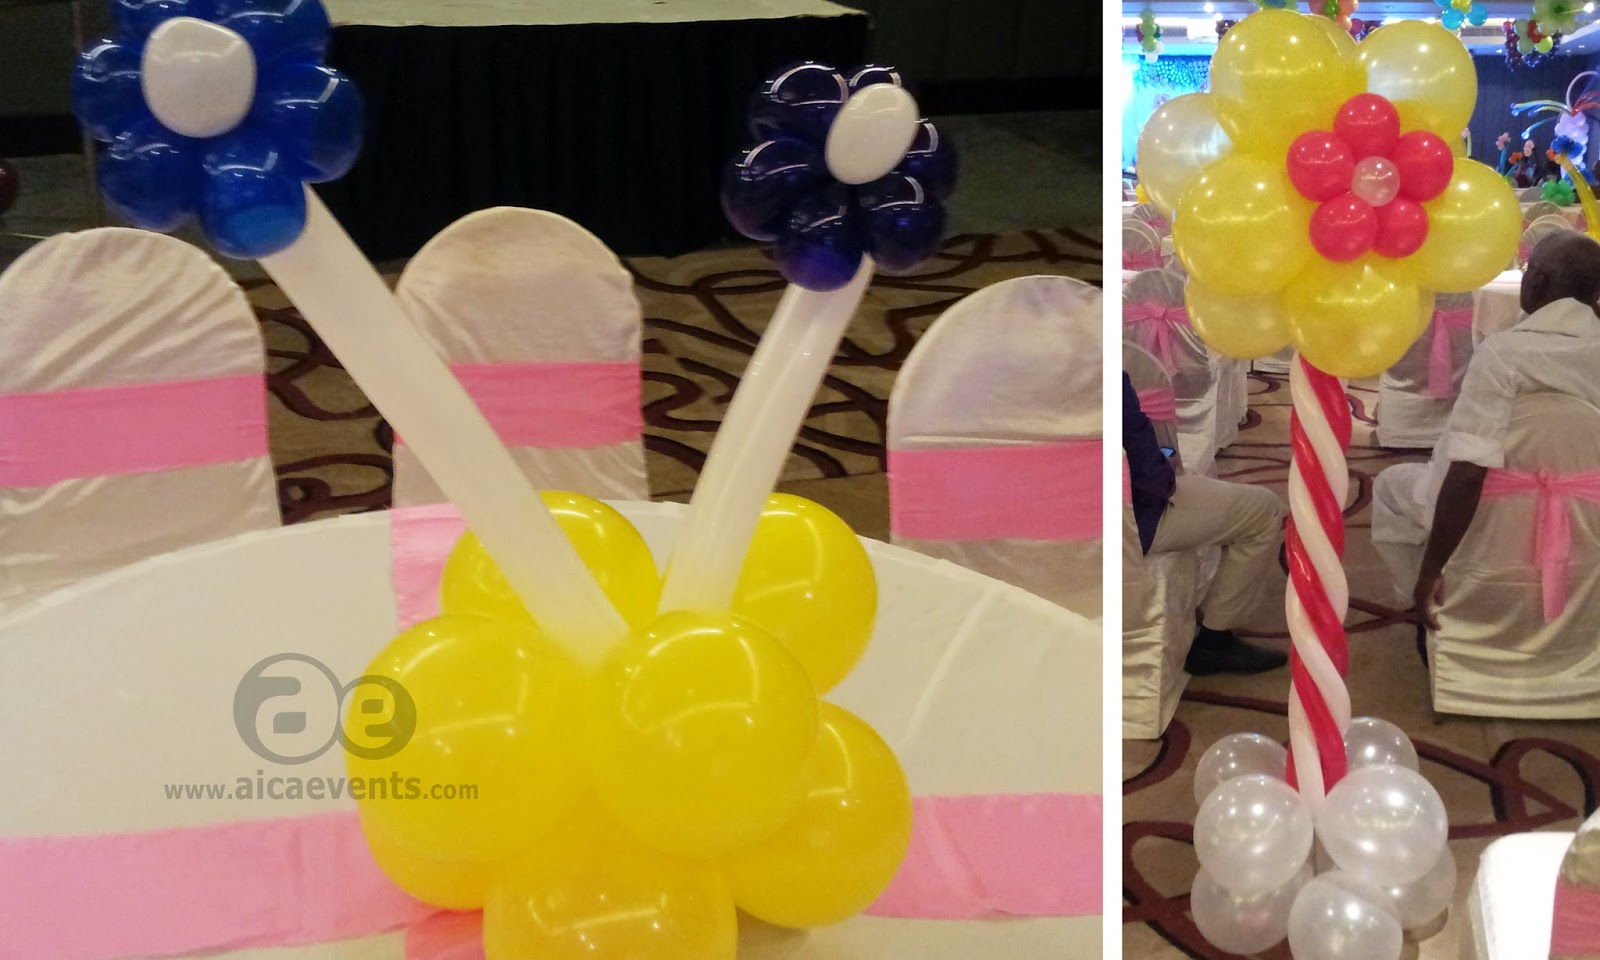 Aicaevents India: Balloon Decorations for Birthday parties